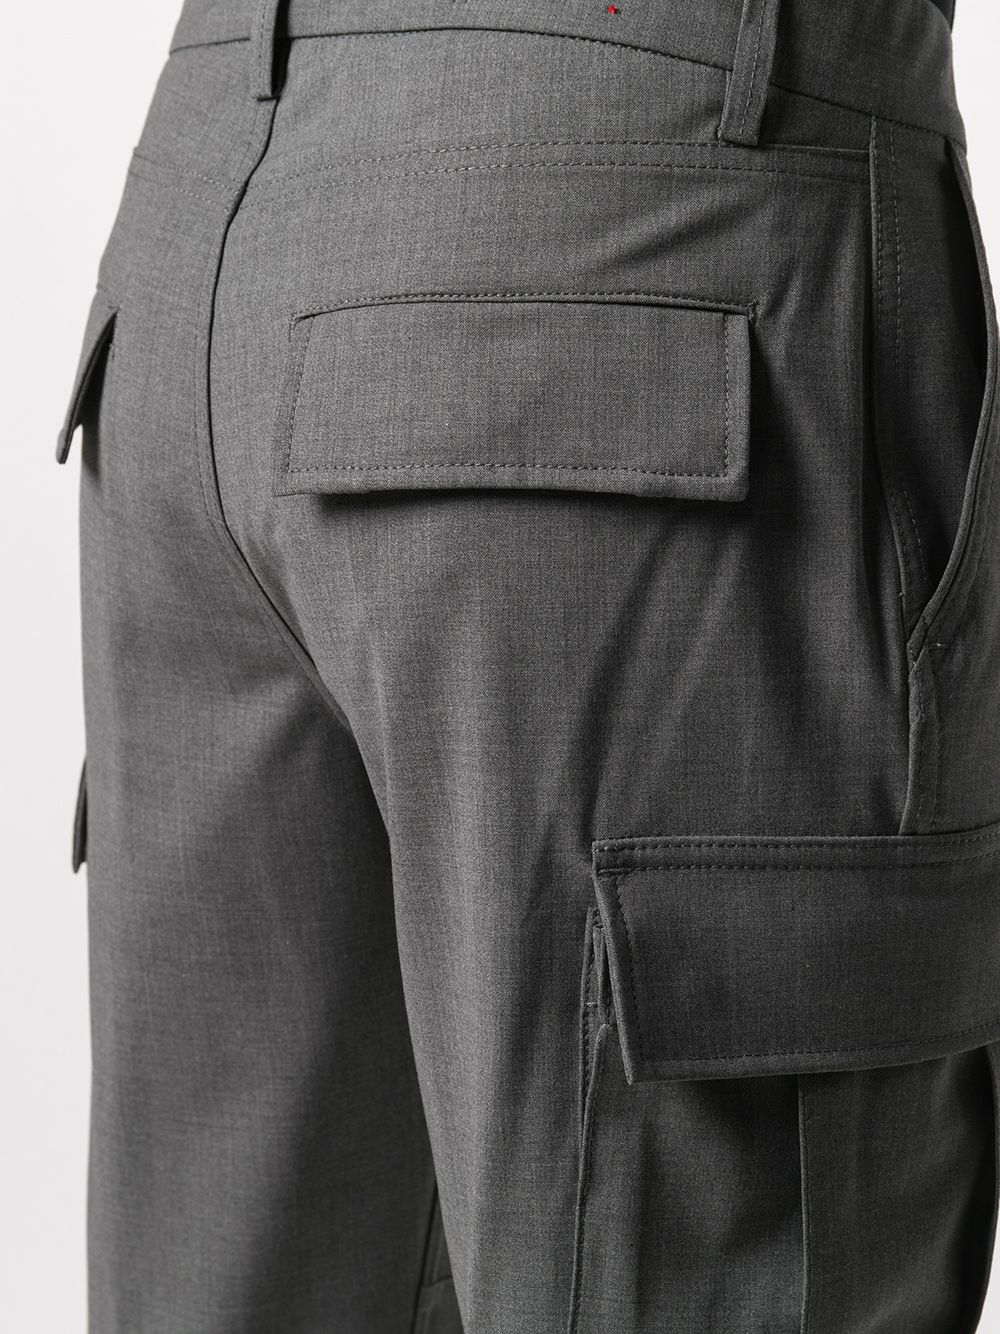 Medium grey wool blend wool-blend cargo trousers featuring slim fit ELEVENTY |  | B75PANA15-TES0B03614